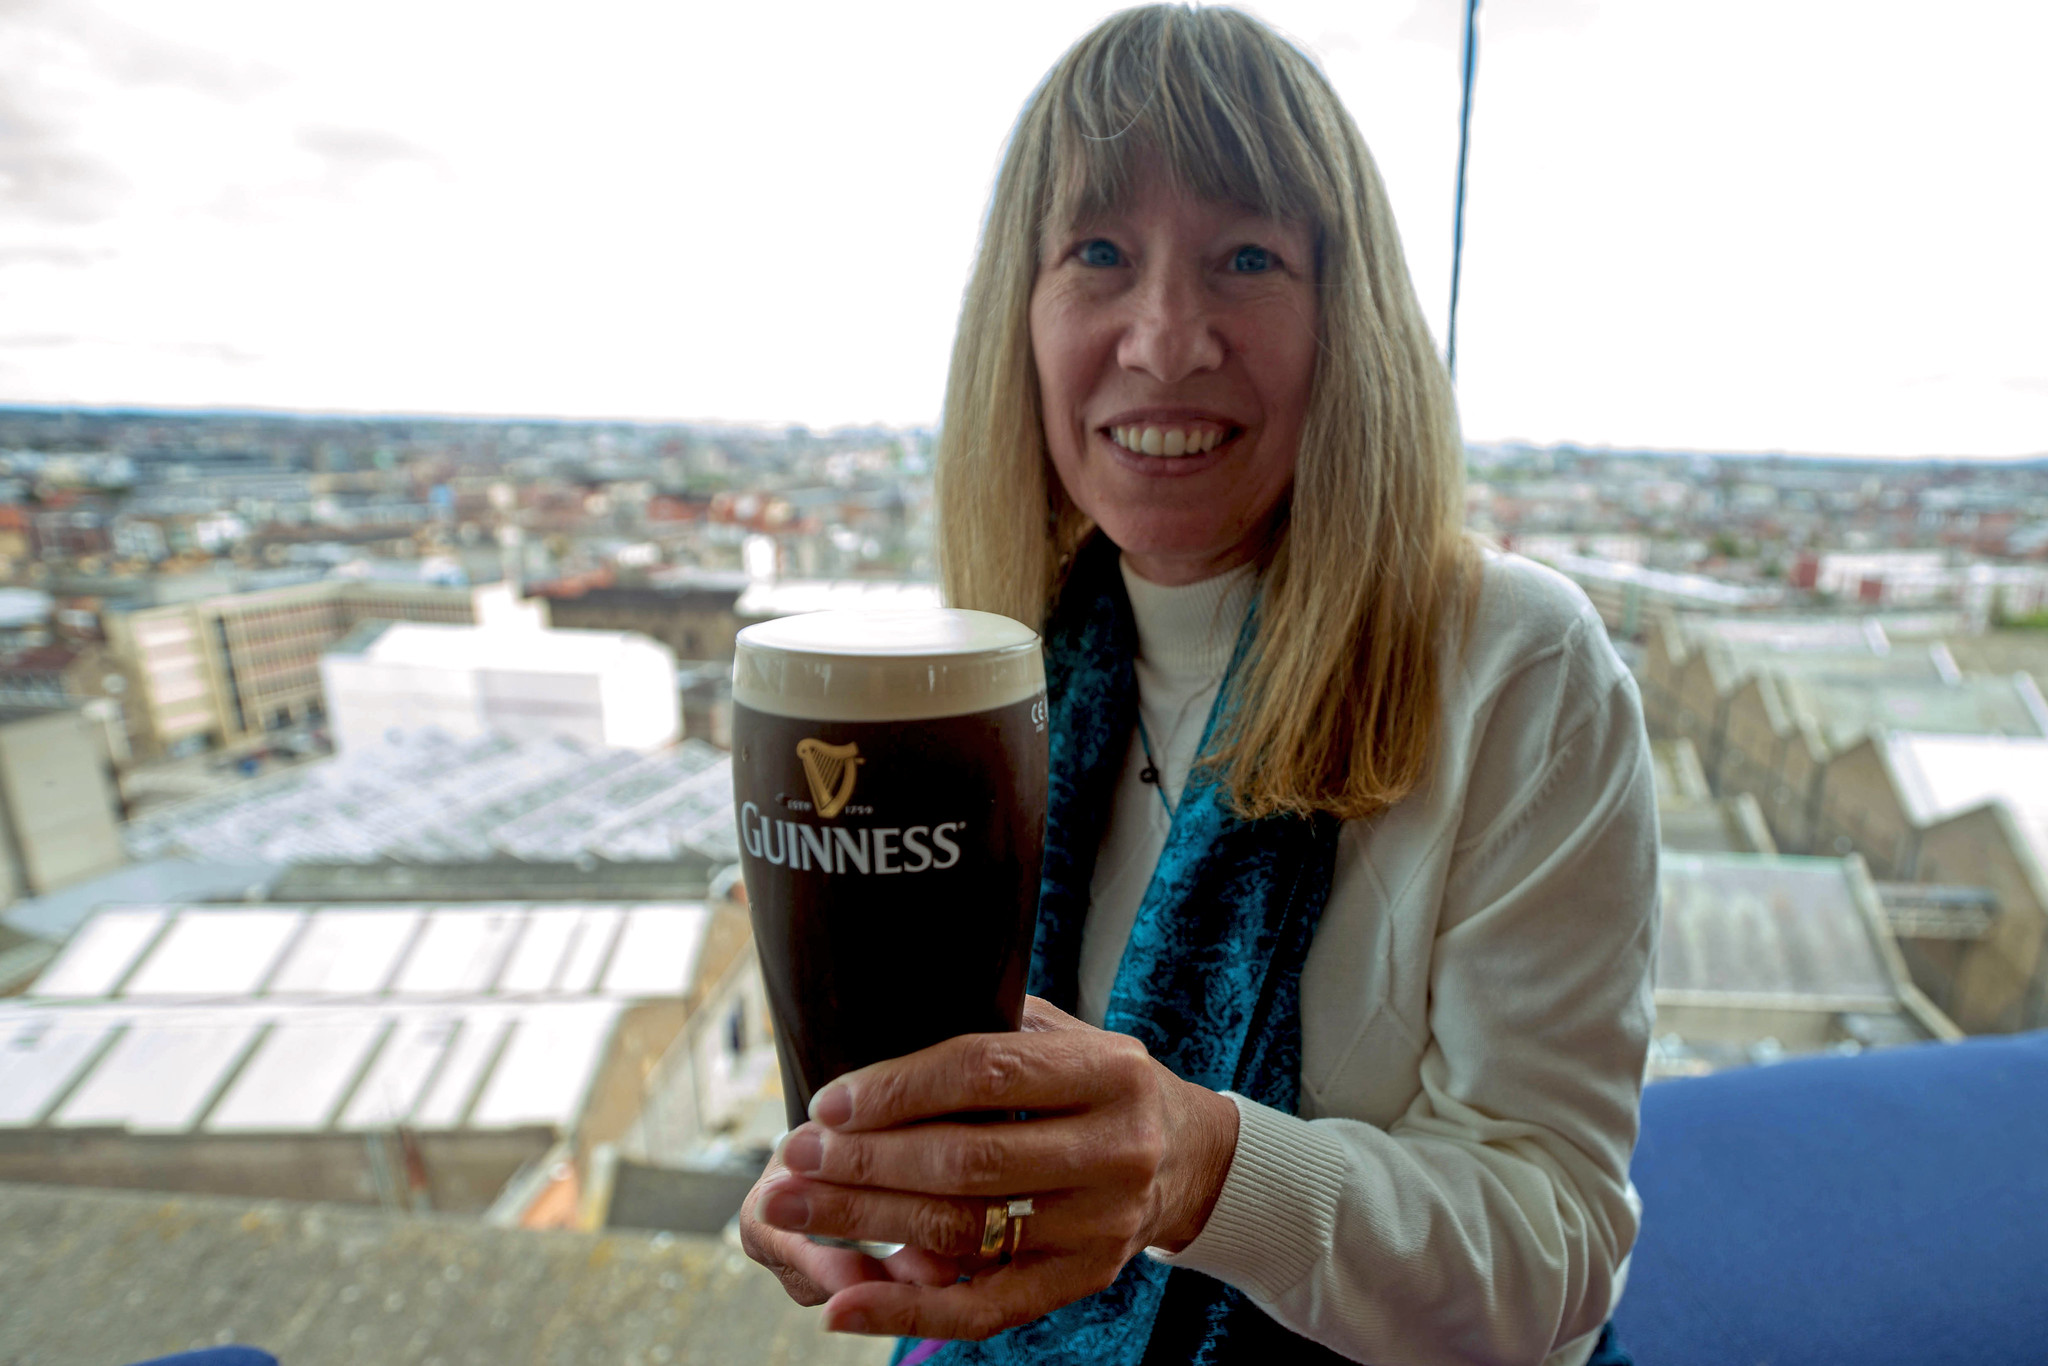 Cynthia and her Guiness